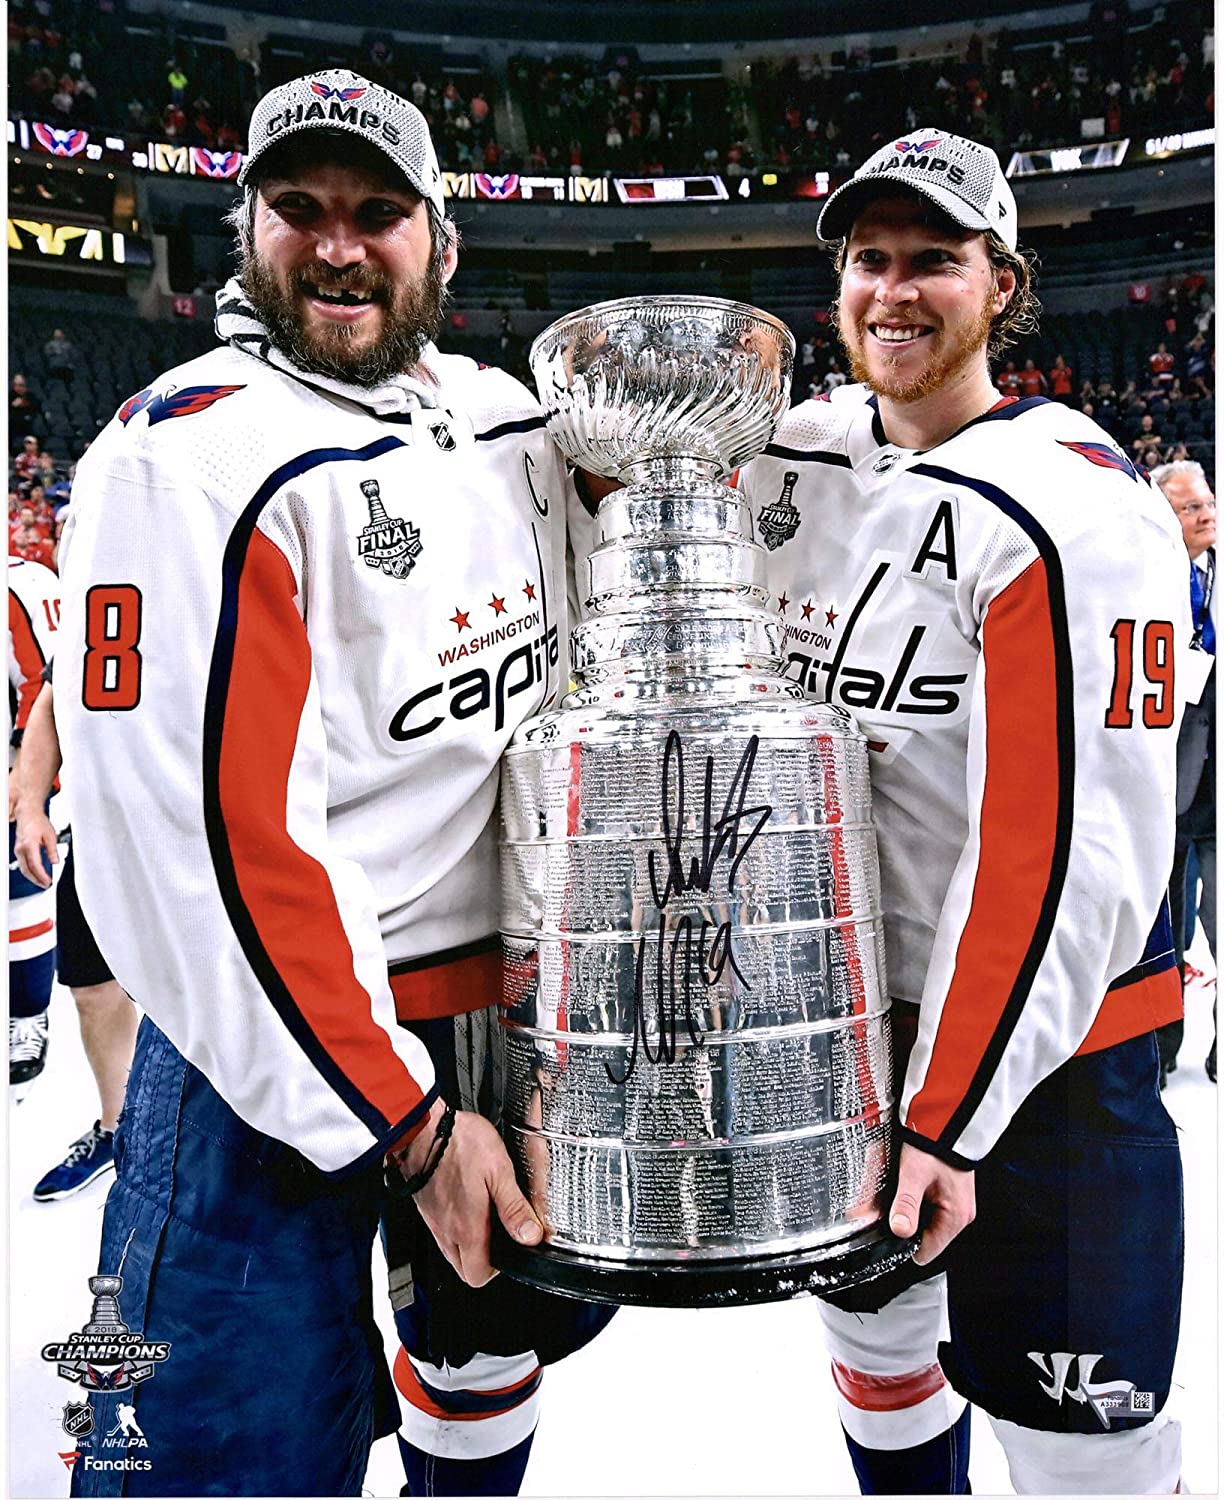 Alex Ovechkin & Nicklas Backstrom Washington Capitals 2018 Stanley Cup Champions Autographed 16' x 20' Raising Cup Photograph - Fanatics Authentic Certified